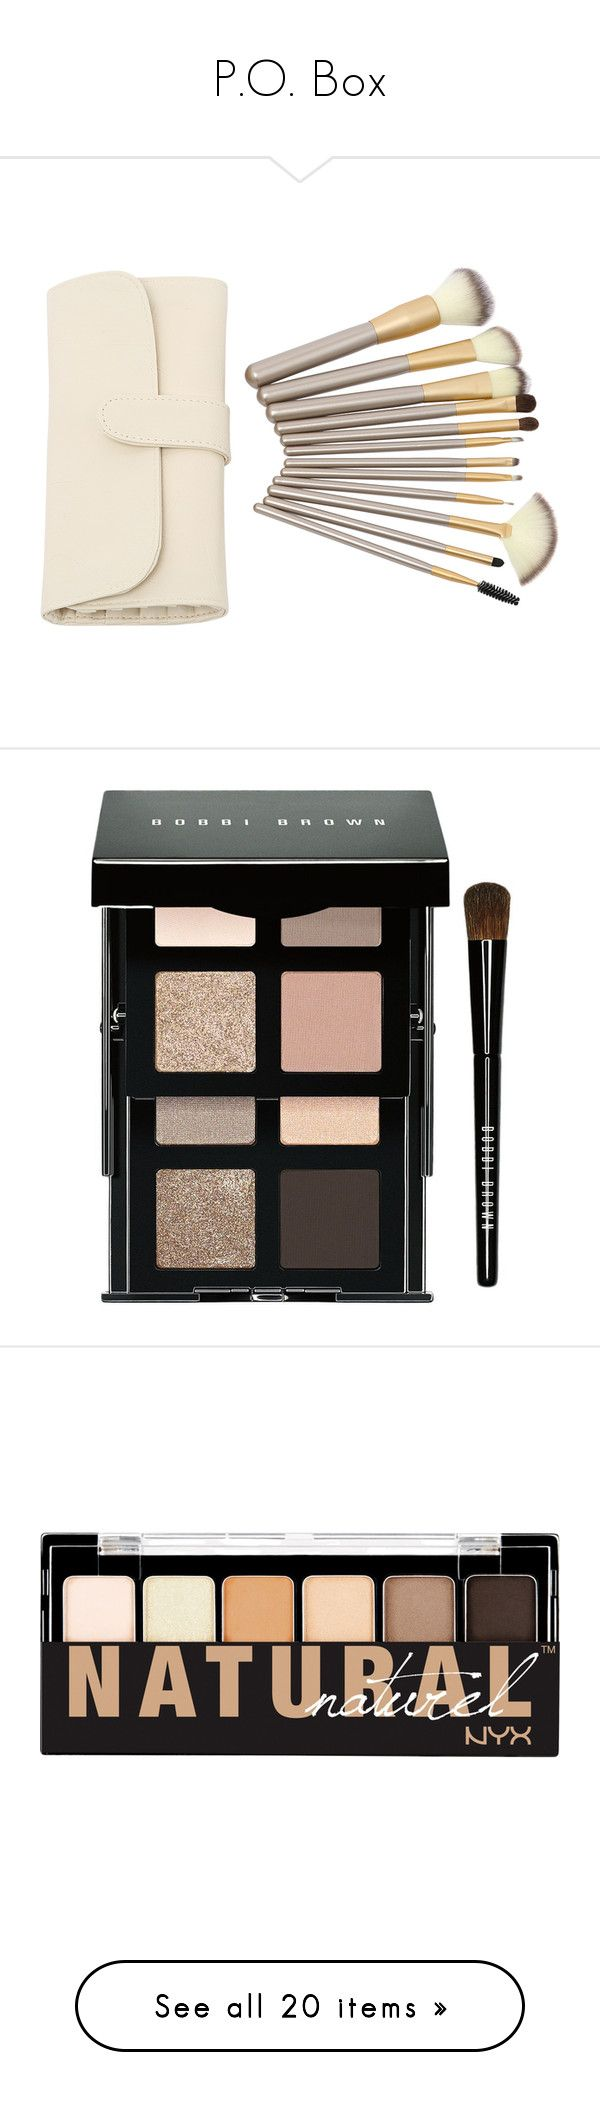 """""""P.O. Box"""" by xxxlovexx ❤ liked on Polyvore featuring beauty products, makeup, makeup tools, makeup brushes, beauty, cosmetics, fillers, other, beige and eye makeup"""